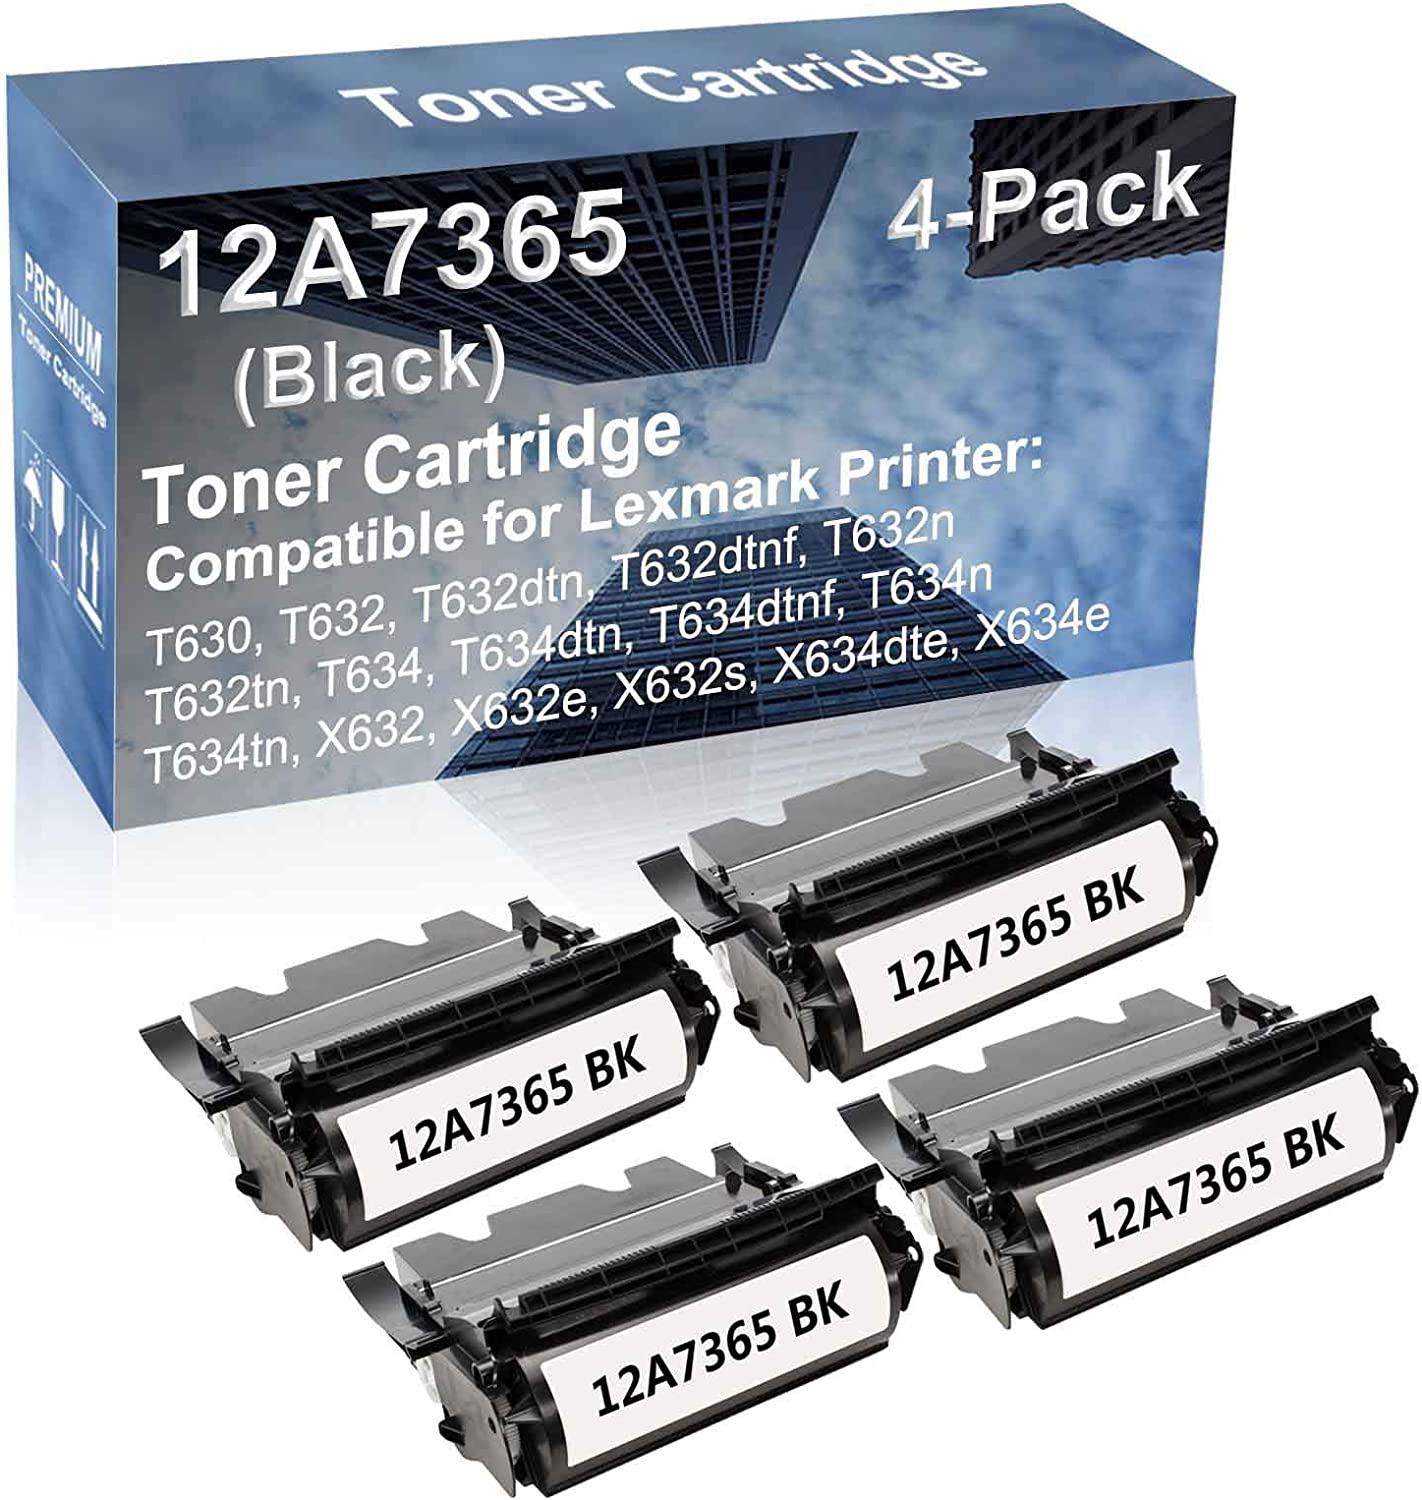 4-Pack Compatible High Capacity T634, T634dtn, T634dtnf, T634n, T634tn Printer Toner Cartridge Replacement for Lexmark 12A7365 Toner Cartridge (Black)